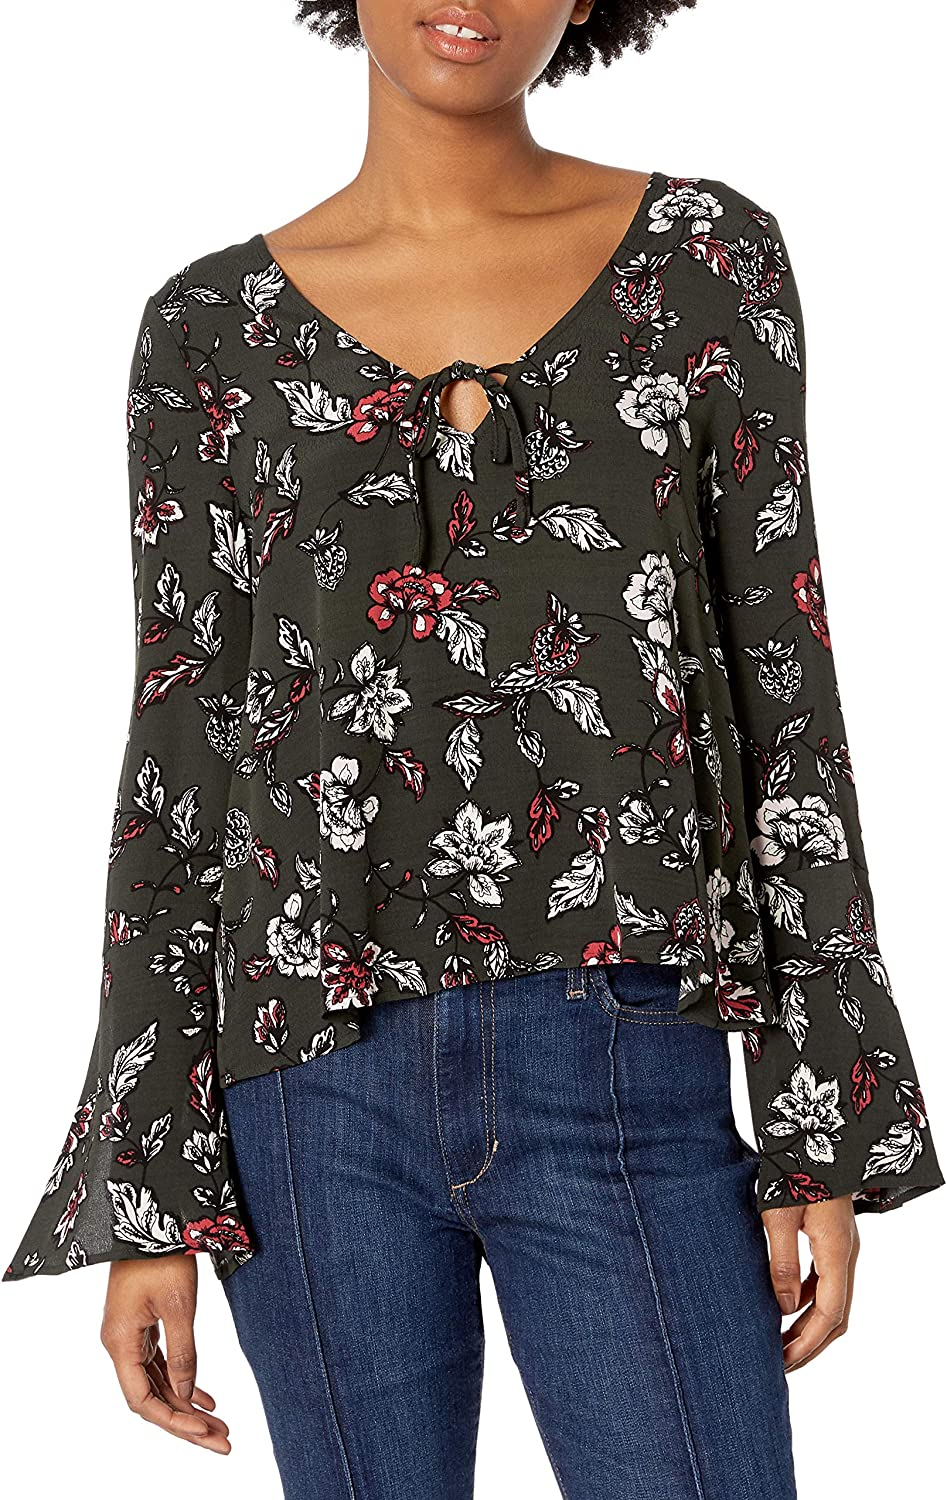 cupcakes and cashmere Womens Berney Floral Print Off The Shoulder Top